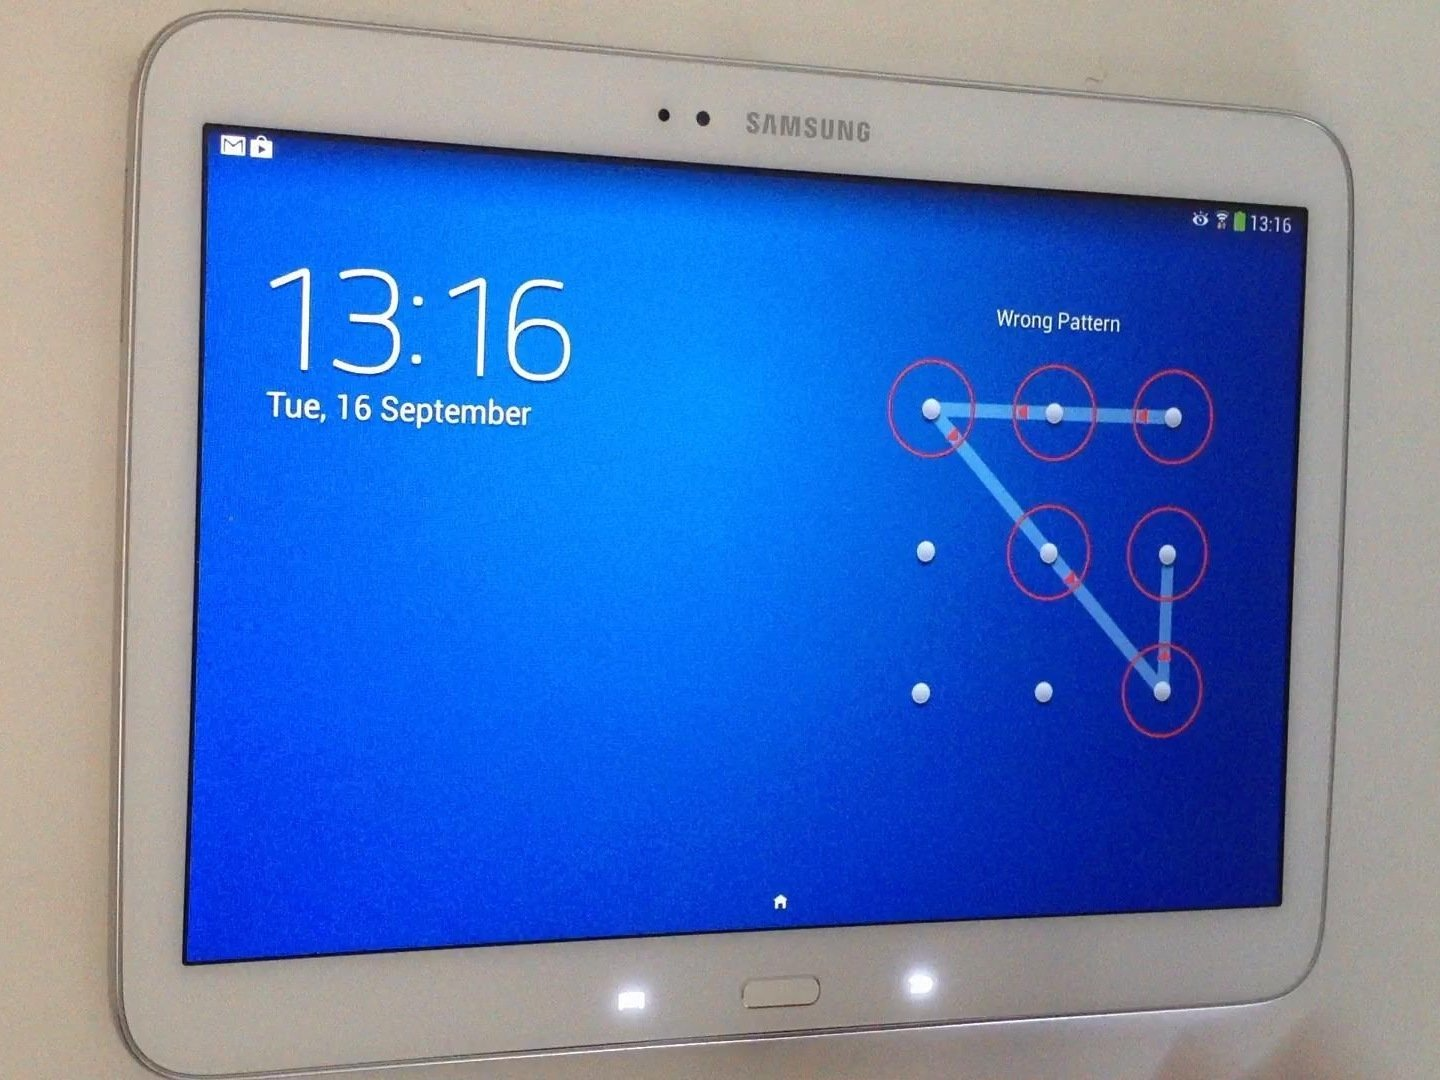 Samsung Galaxy Tab 3 10 1 - Factory Reset Password Removal